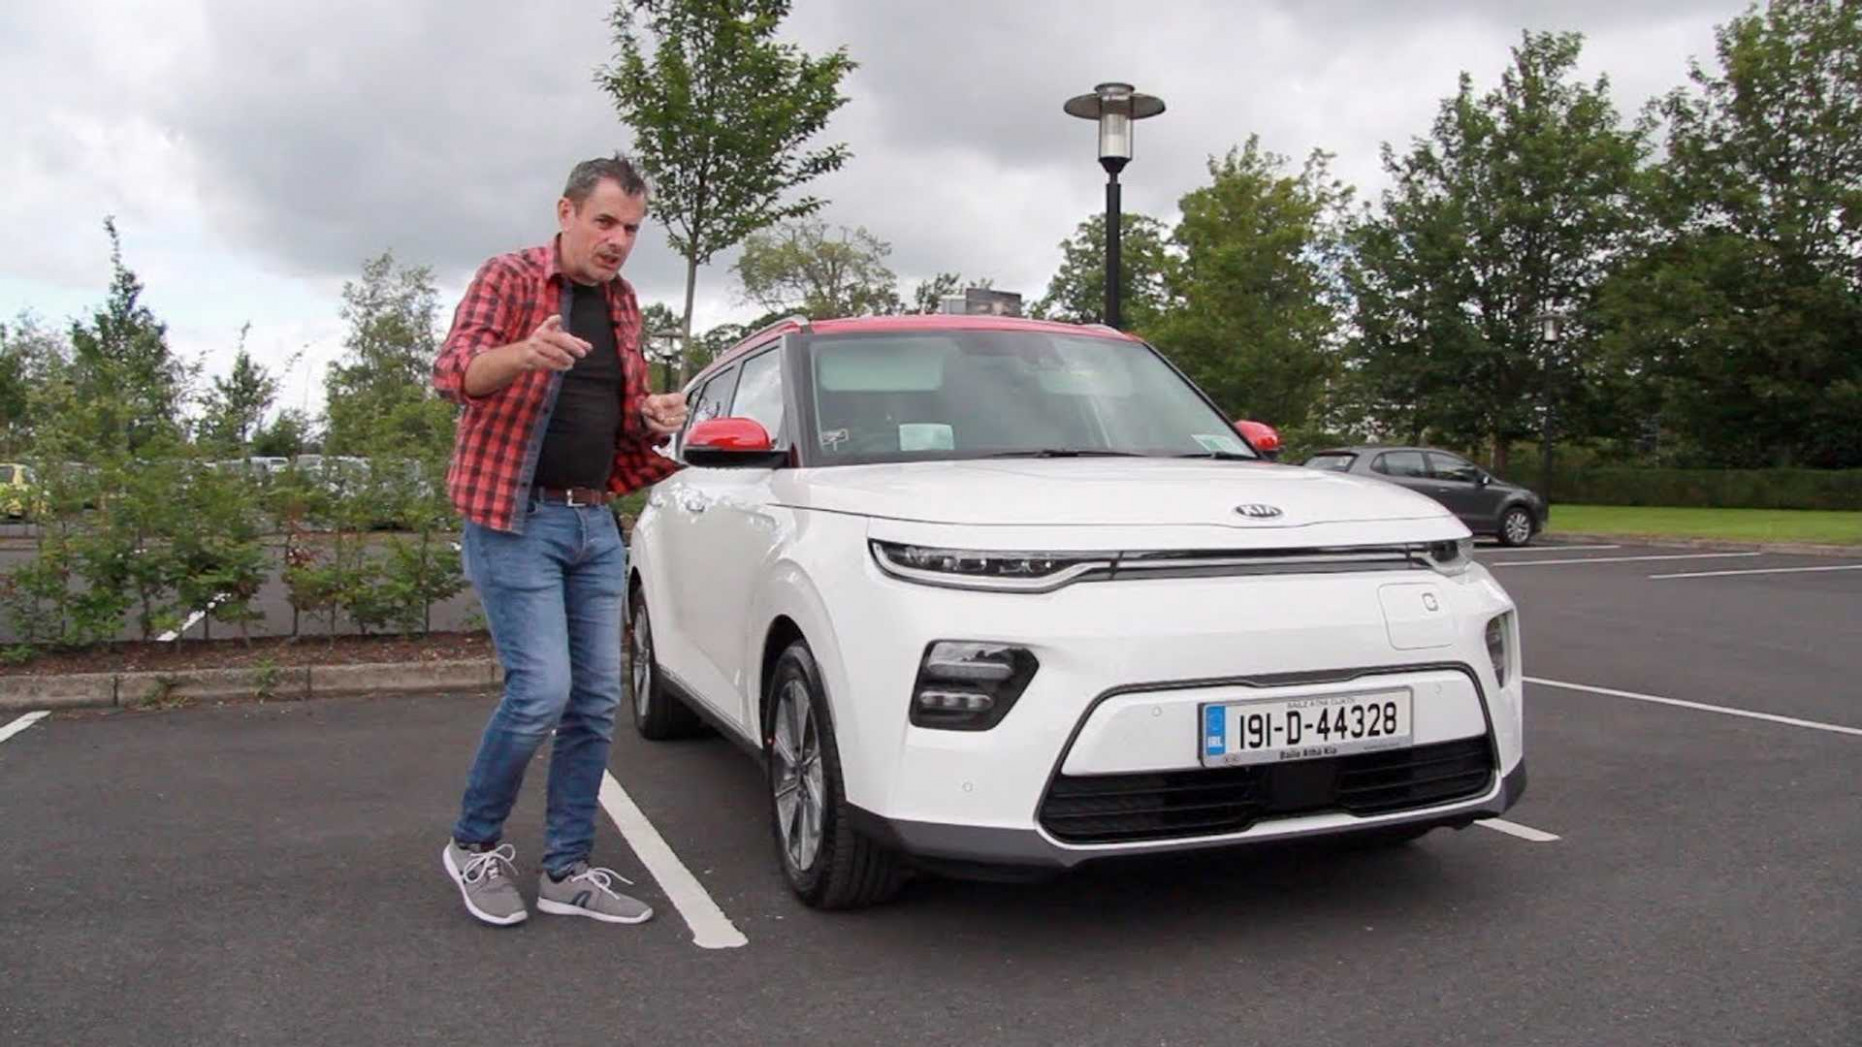 8 Kia e-Soul May Be One Of The Coolest Electric Cars To Date - 2020 kia electric car